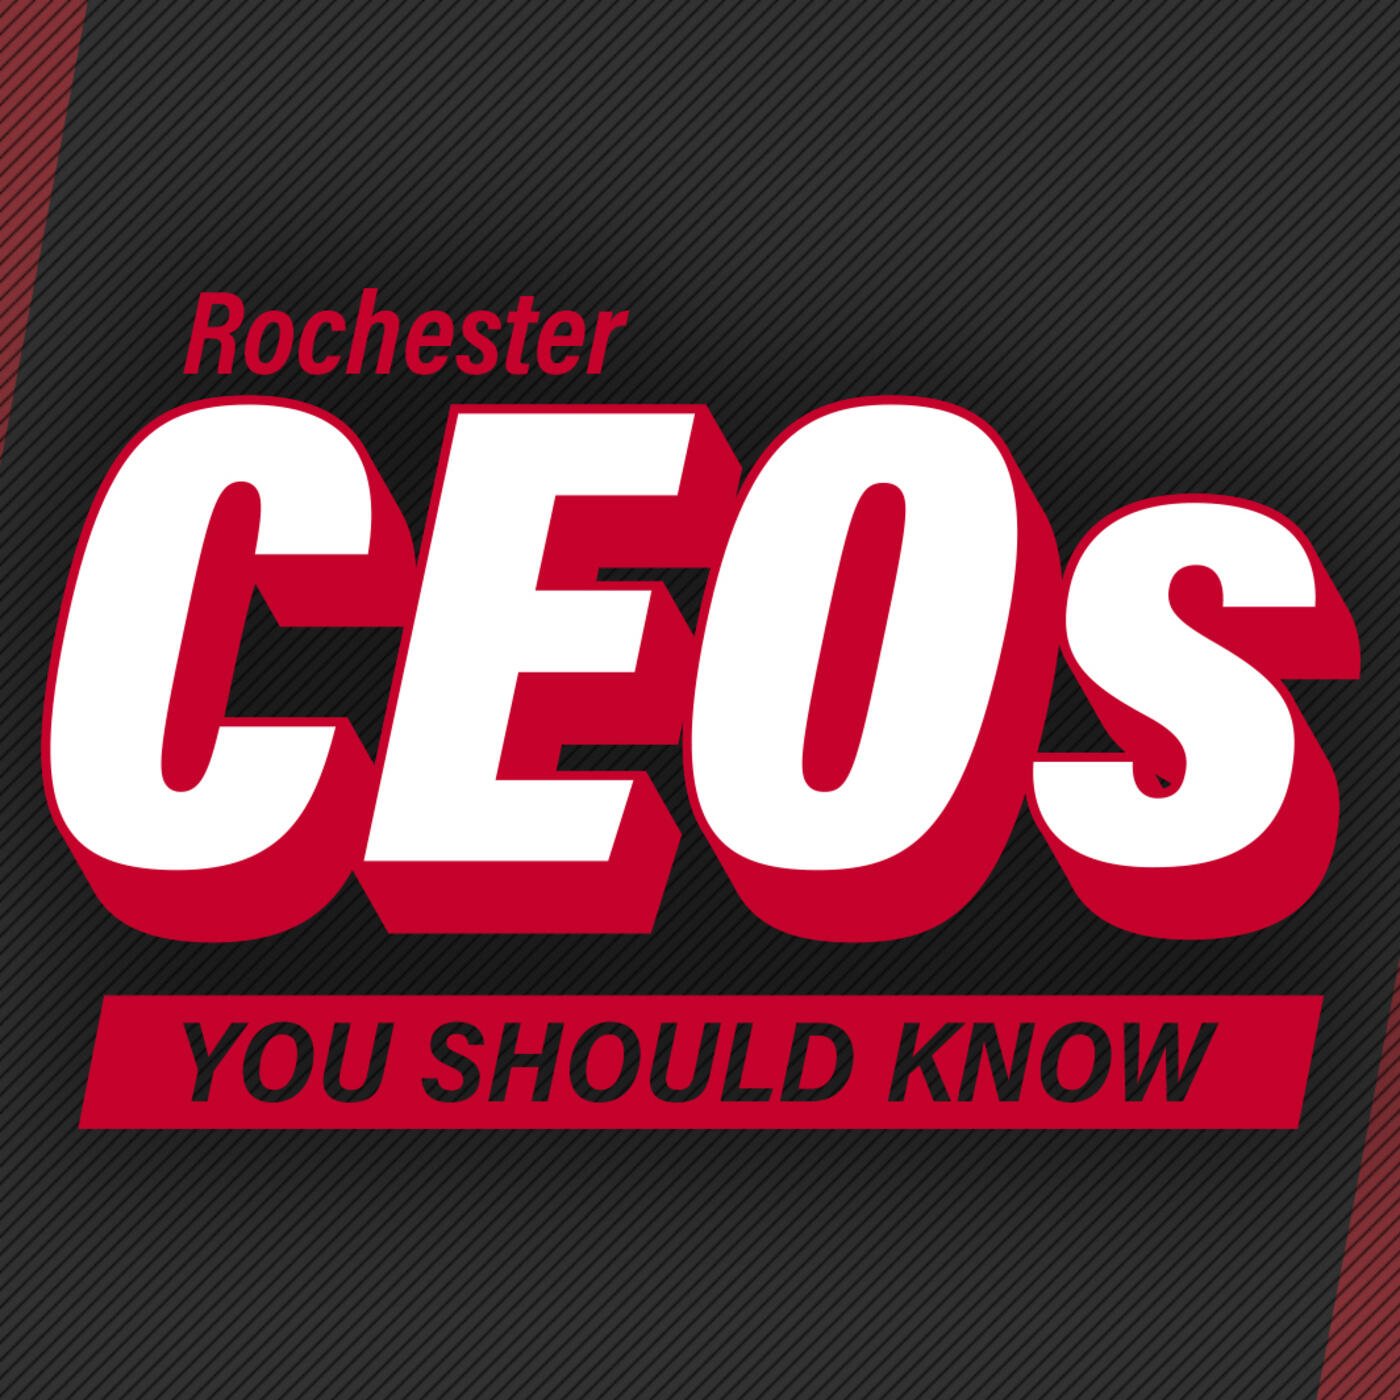 Listen to Michelle Ashby (Tipping Point Communications) | Rochester CEOs You Should Know | Podcasts